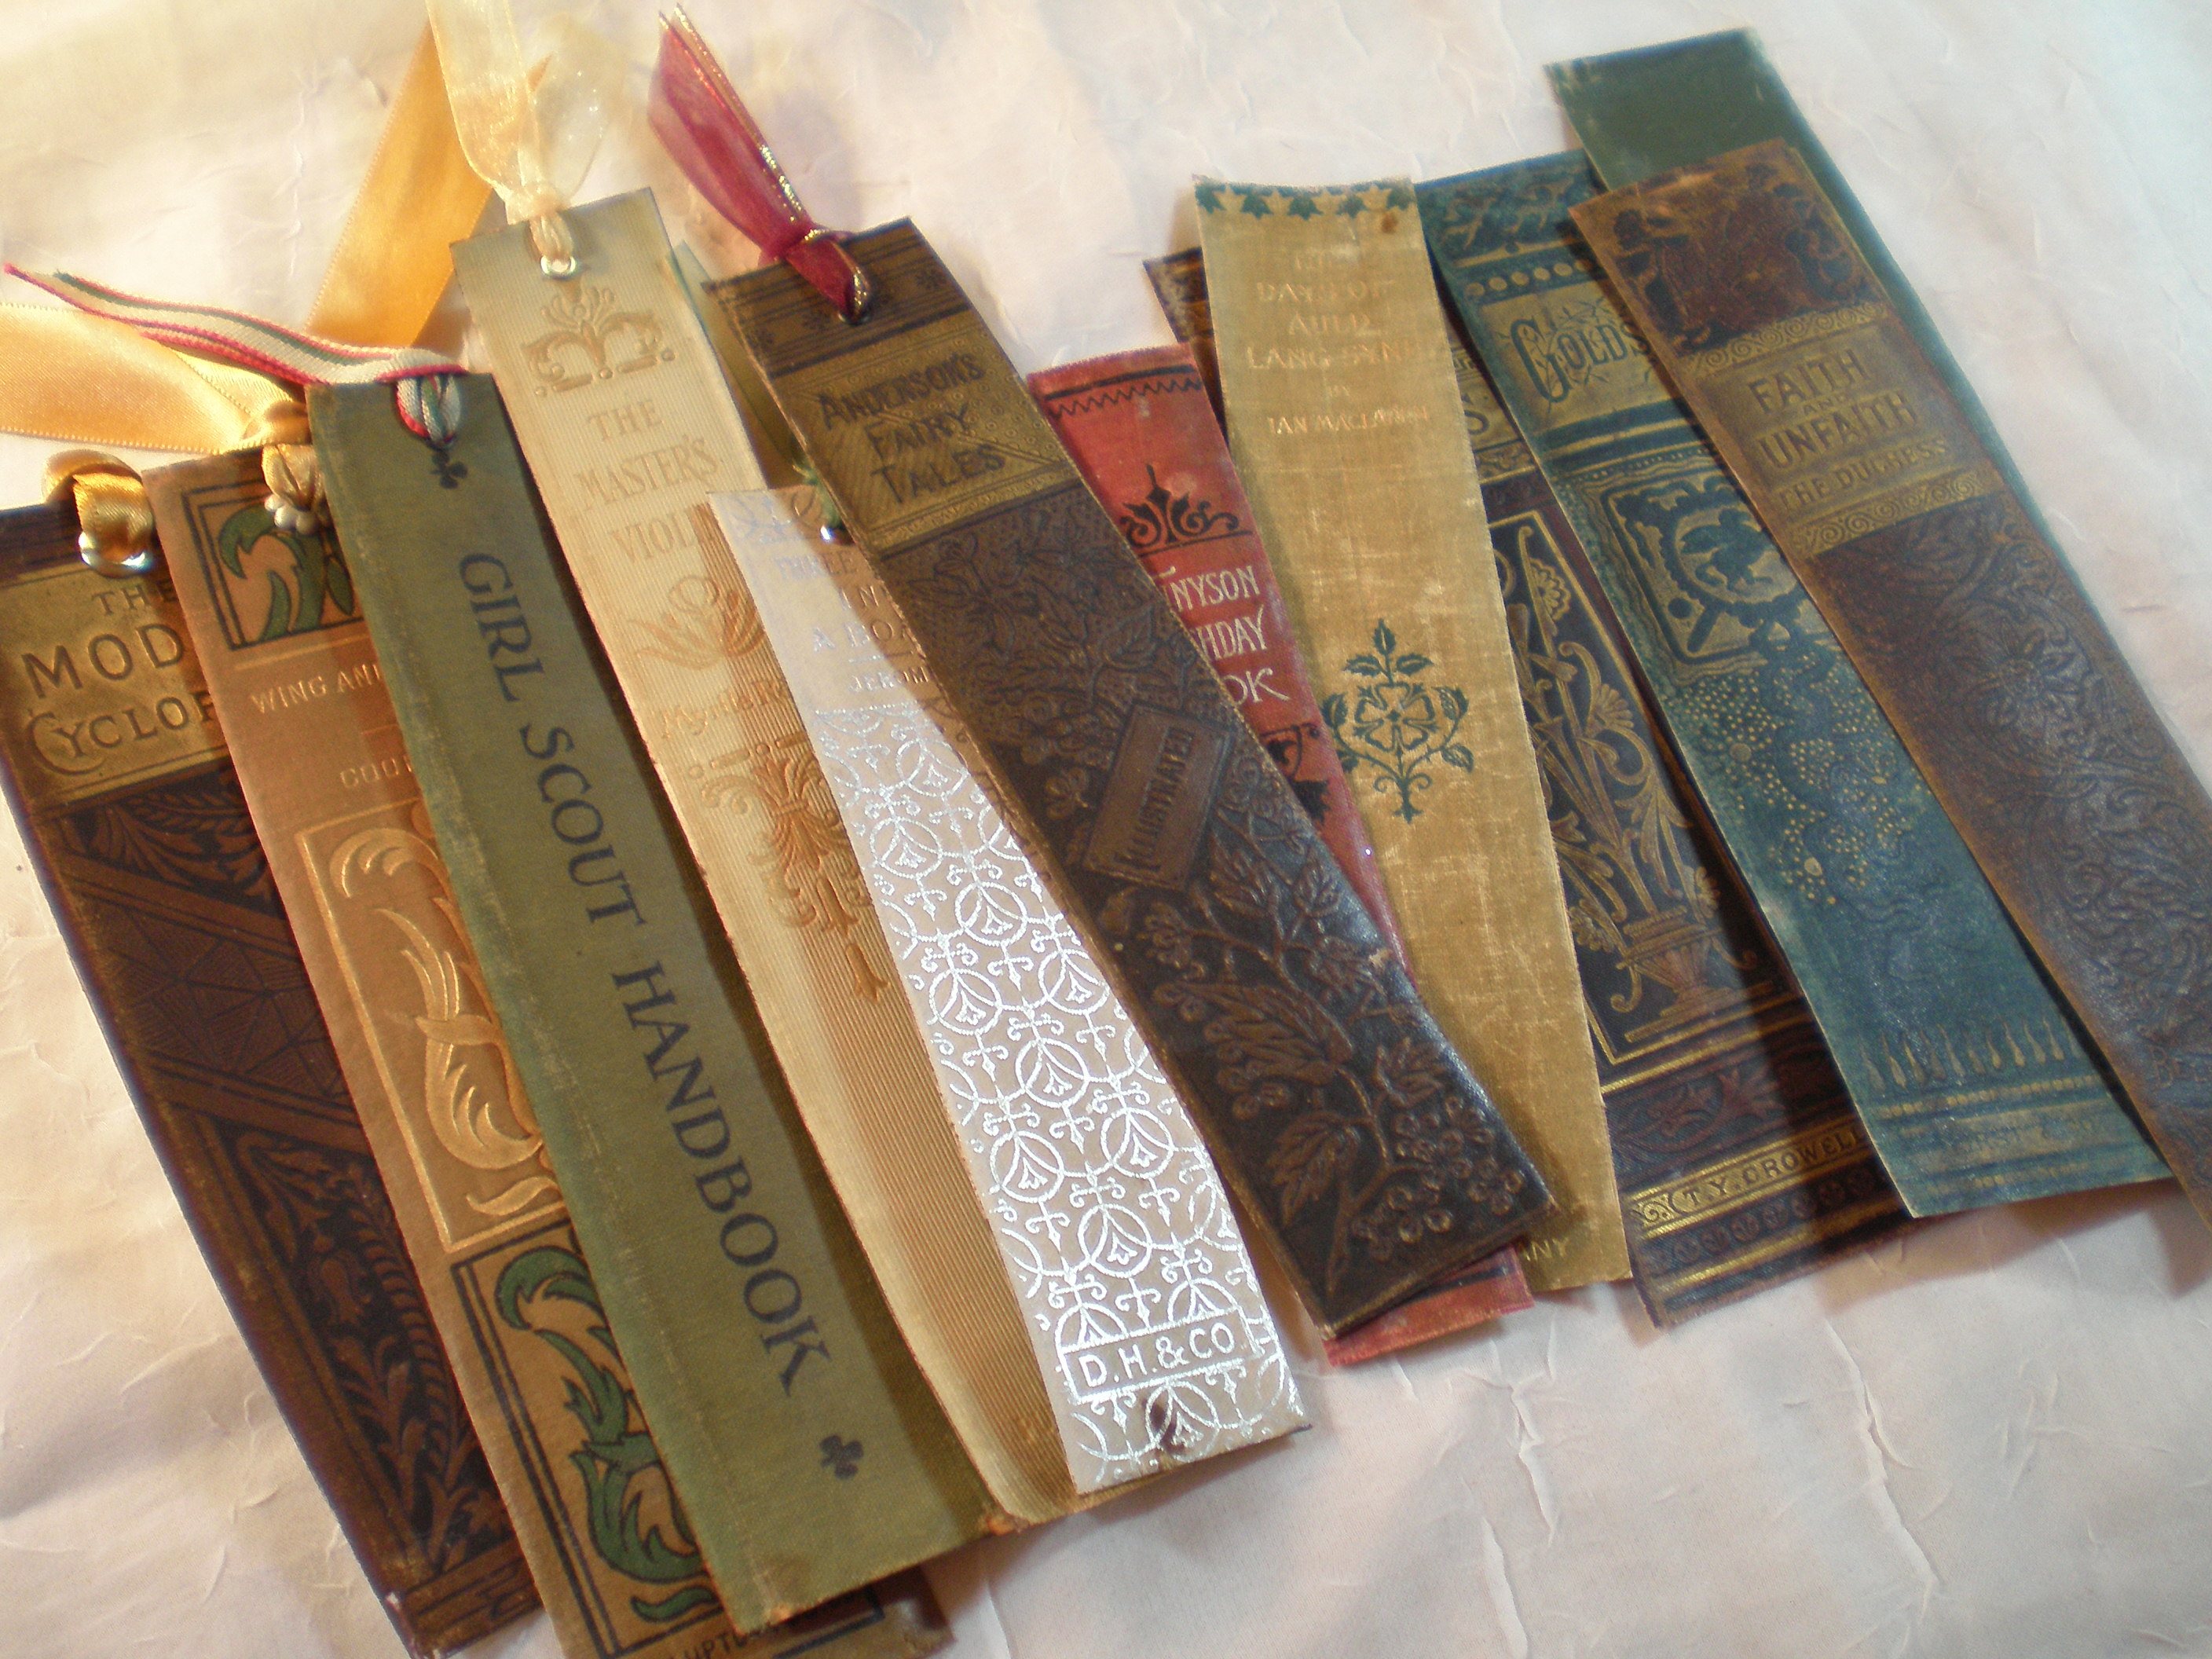 The Salvage Bookmark